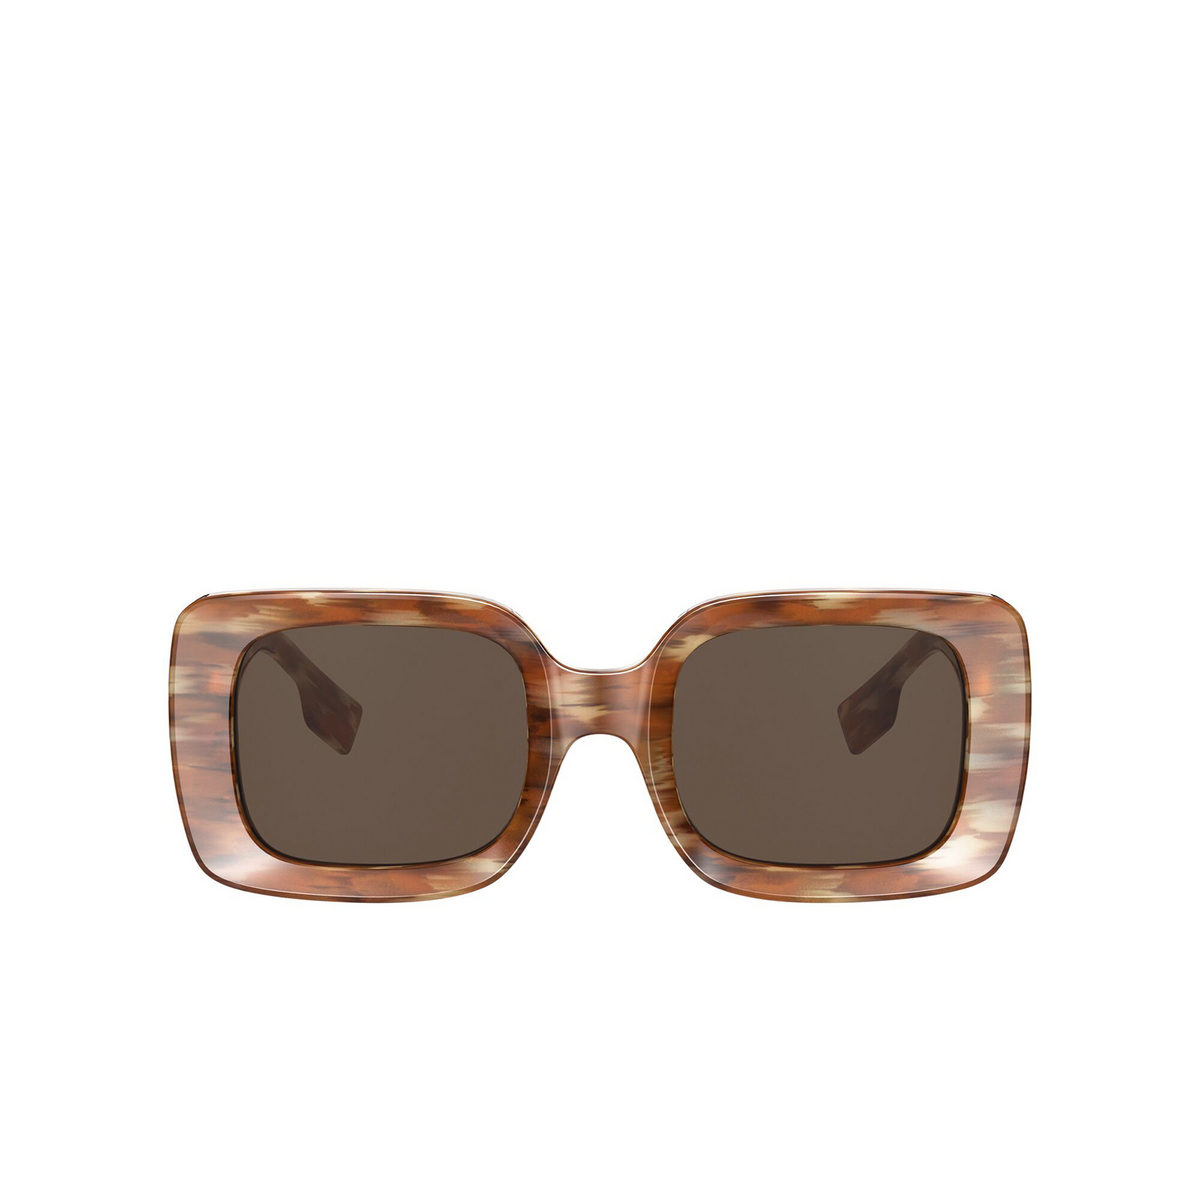 Burberry® Square Sunglasses: Delilah BE4327 color Brown 391573 - front view.